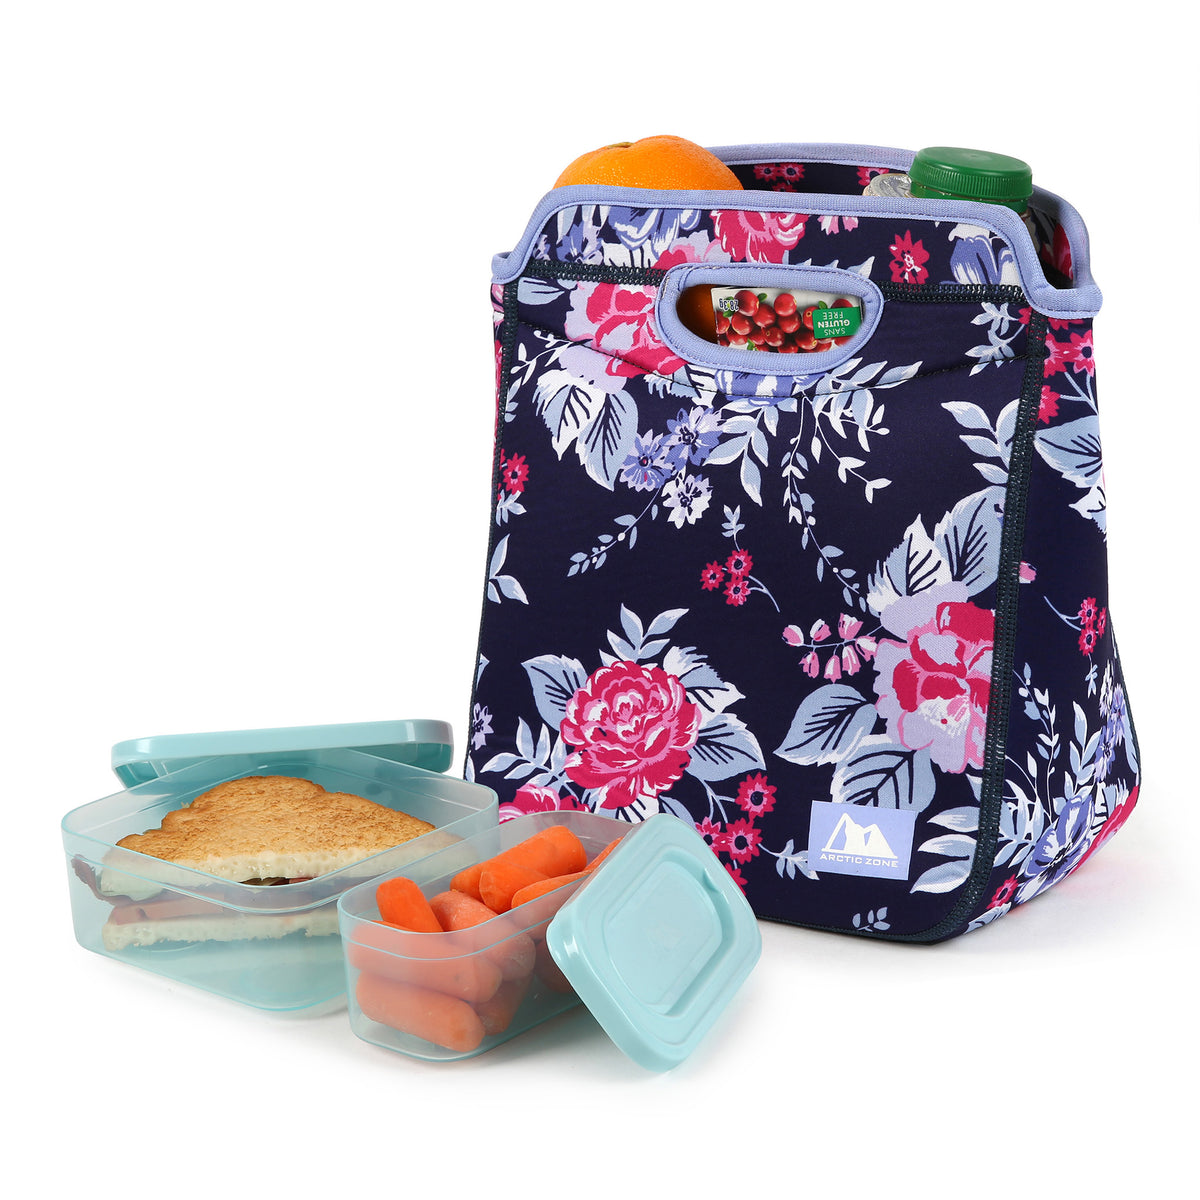 Neoprene Zaza Tote with 210gm Ice pack & 4 piece Kids Sandwich Set - Propped with food and snacks